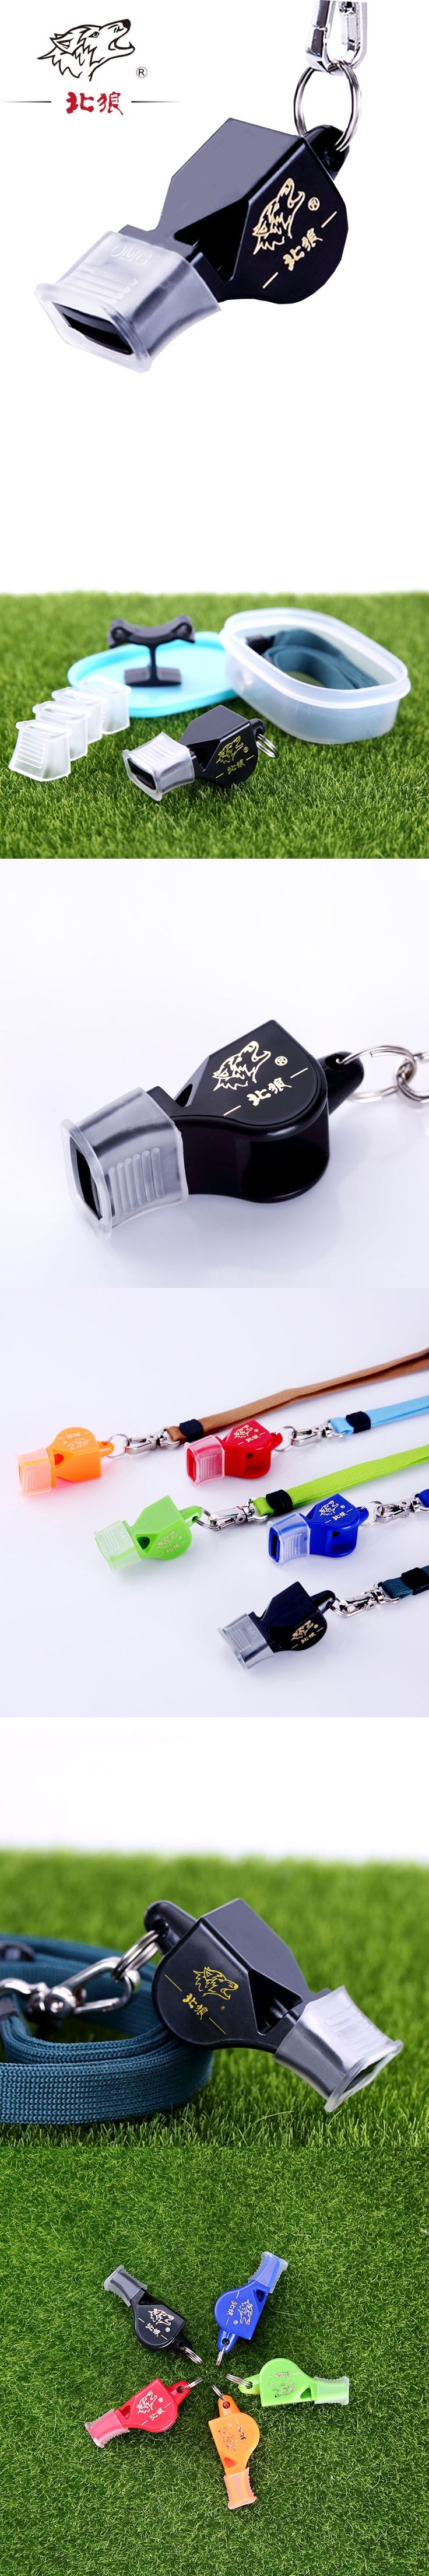 12PCS hot sale football referee whistle survival emergency whistle with lanyard for Hiking Camping boat Outdoor Sports Tools